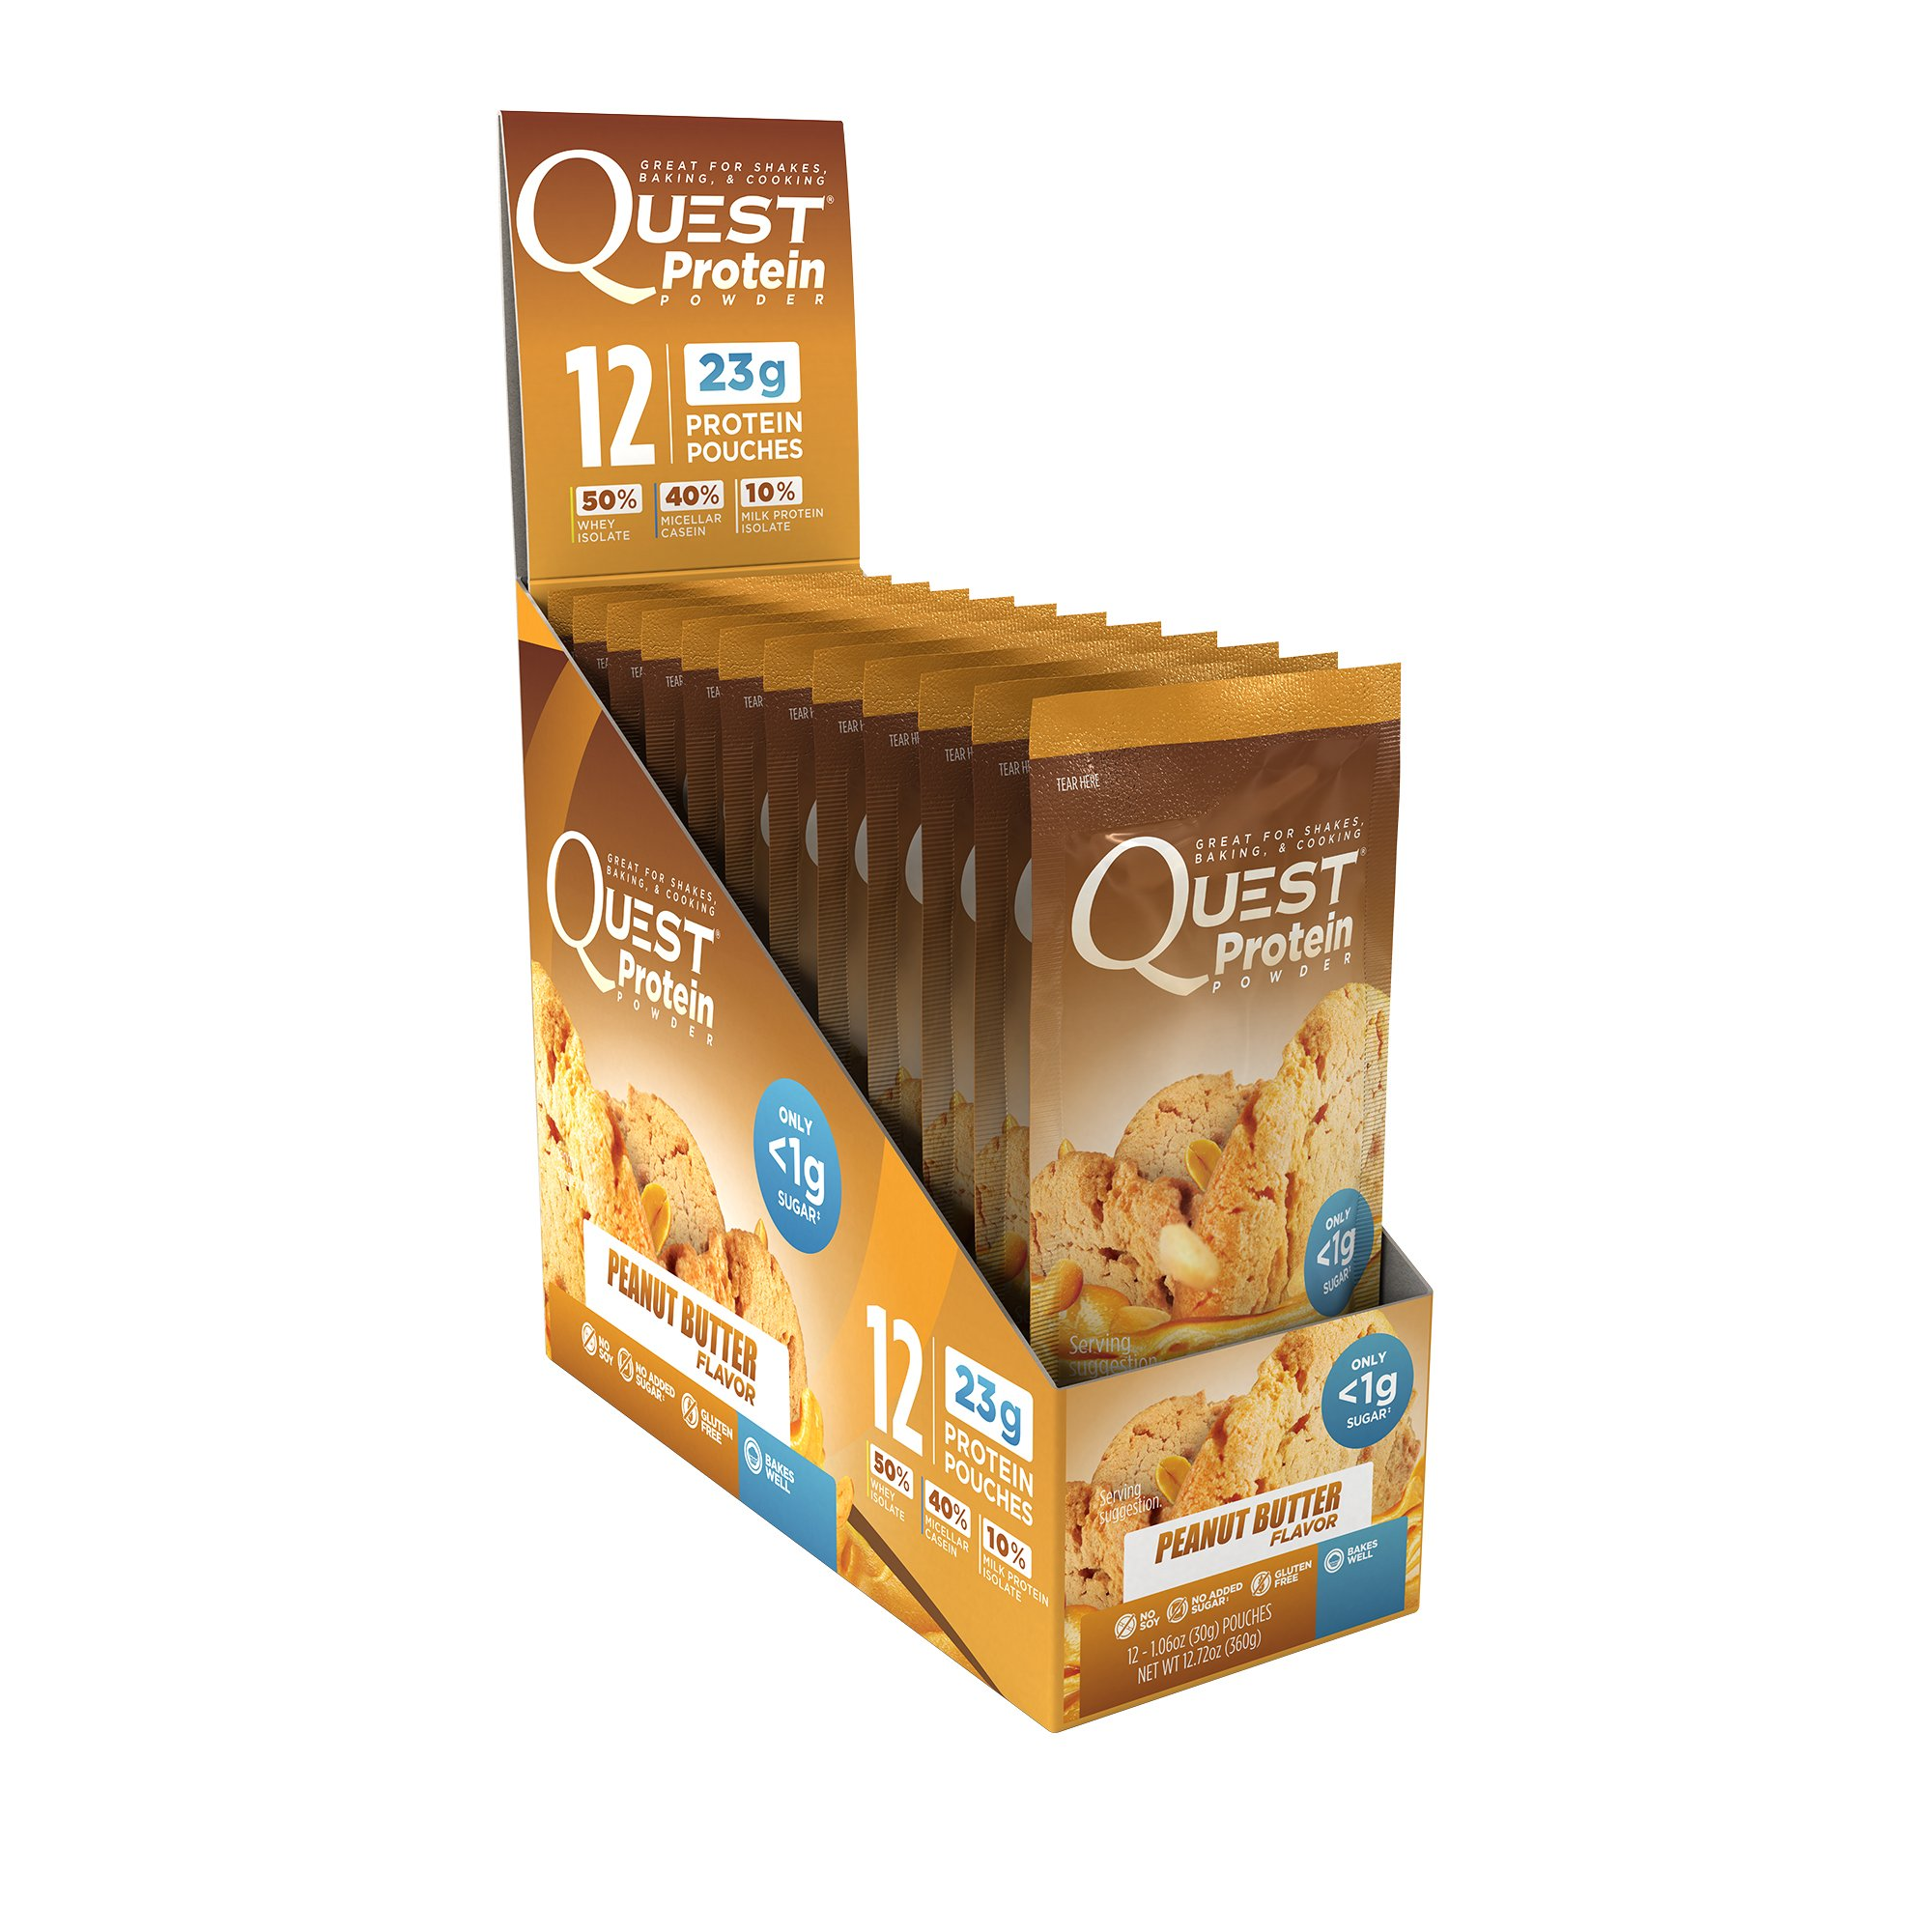 Quest Nutrition Protein Powder, Peanut Butter, 23g Protein, 84% P/Cals, 0g Sugar, 1g Net Carbs, Low Carb, Gluten Free, Soy Free, 1.13oz Packet, 12 Count